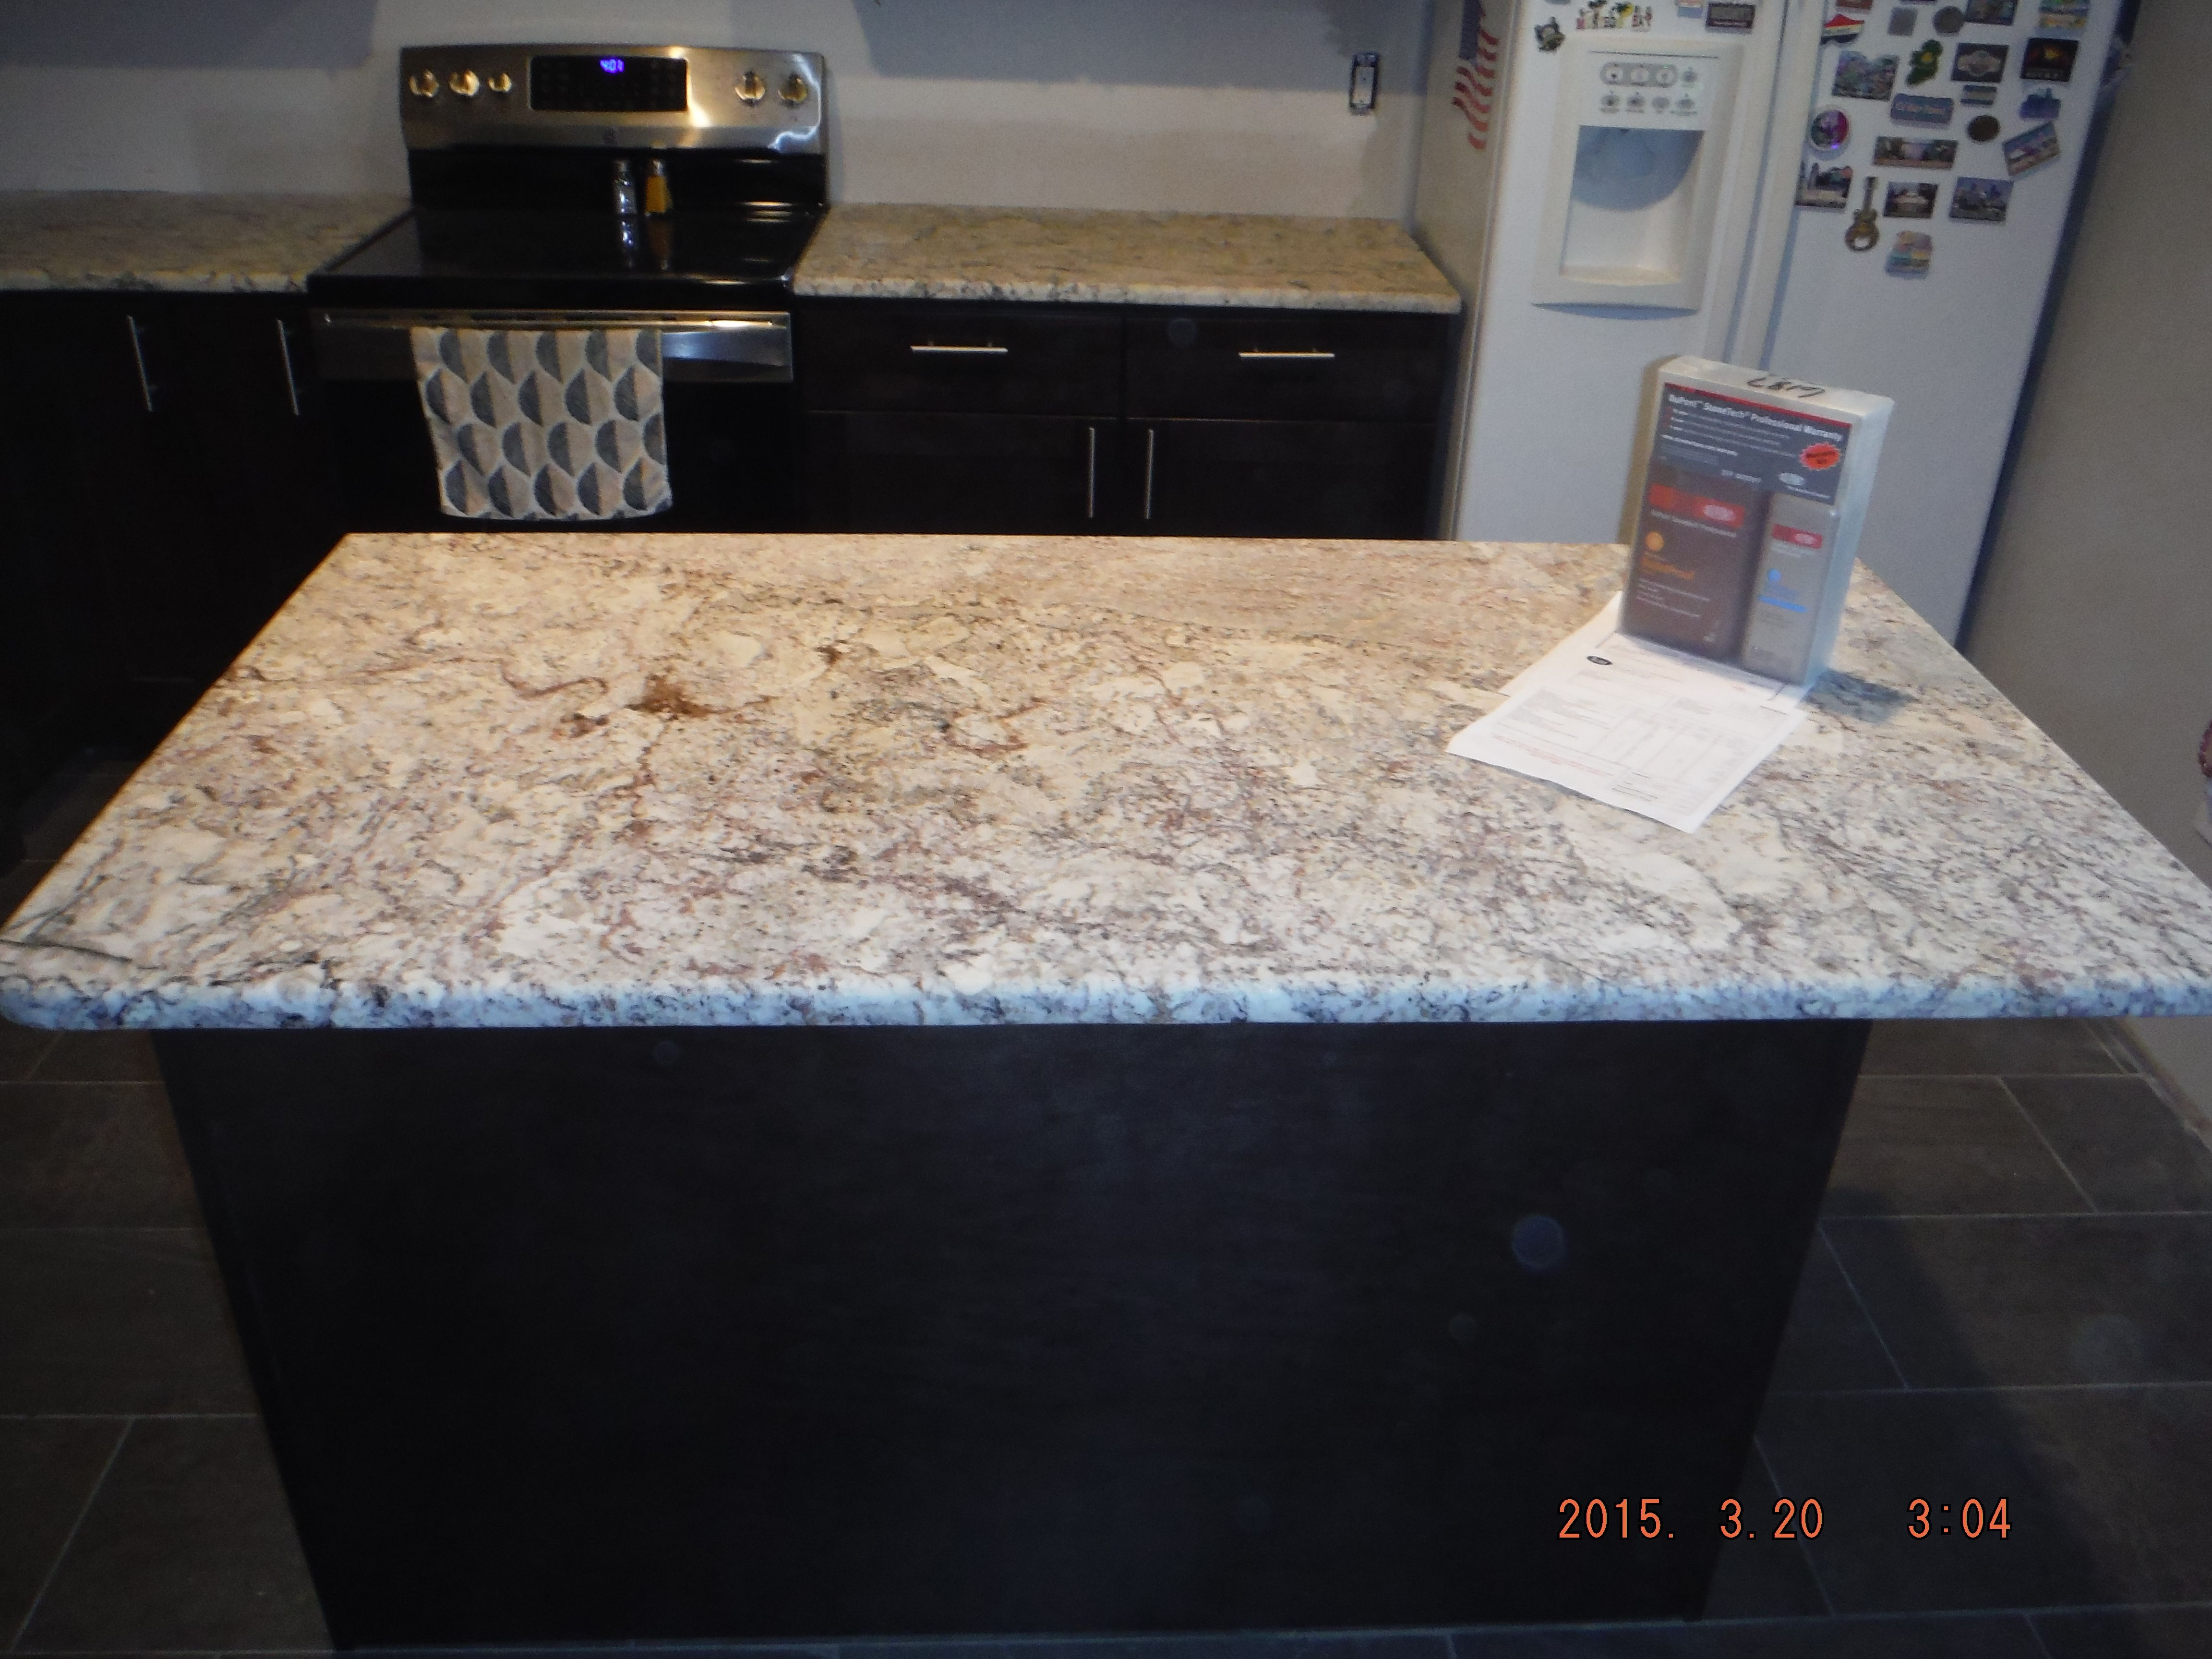 White Springs Leathered Granite Kitchen Countertops For The Cobb Family Knoxville S Stone Interiors Granite Countertops Kitchen Leather Granite Stone Interior